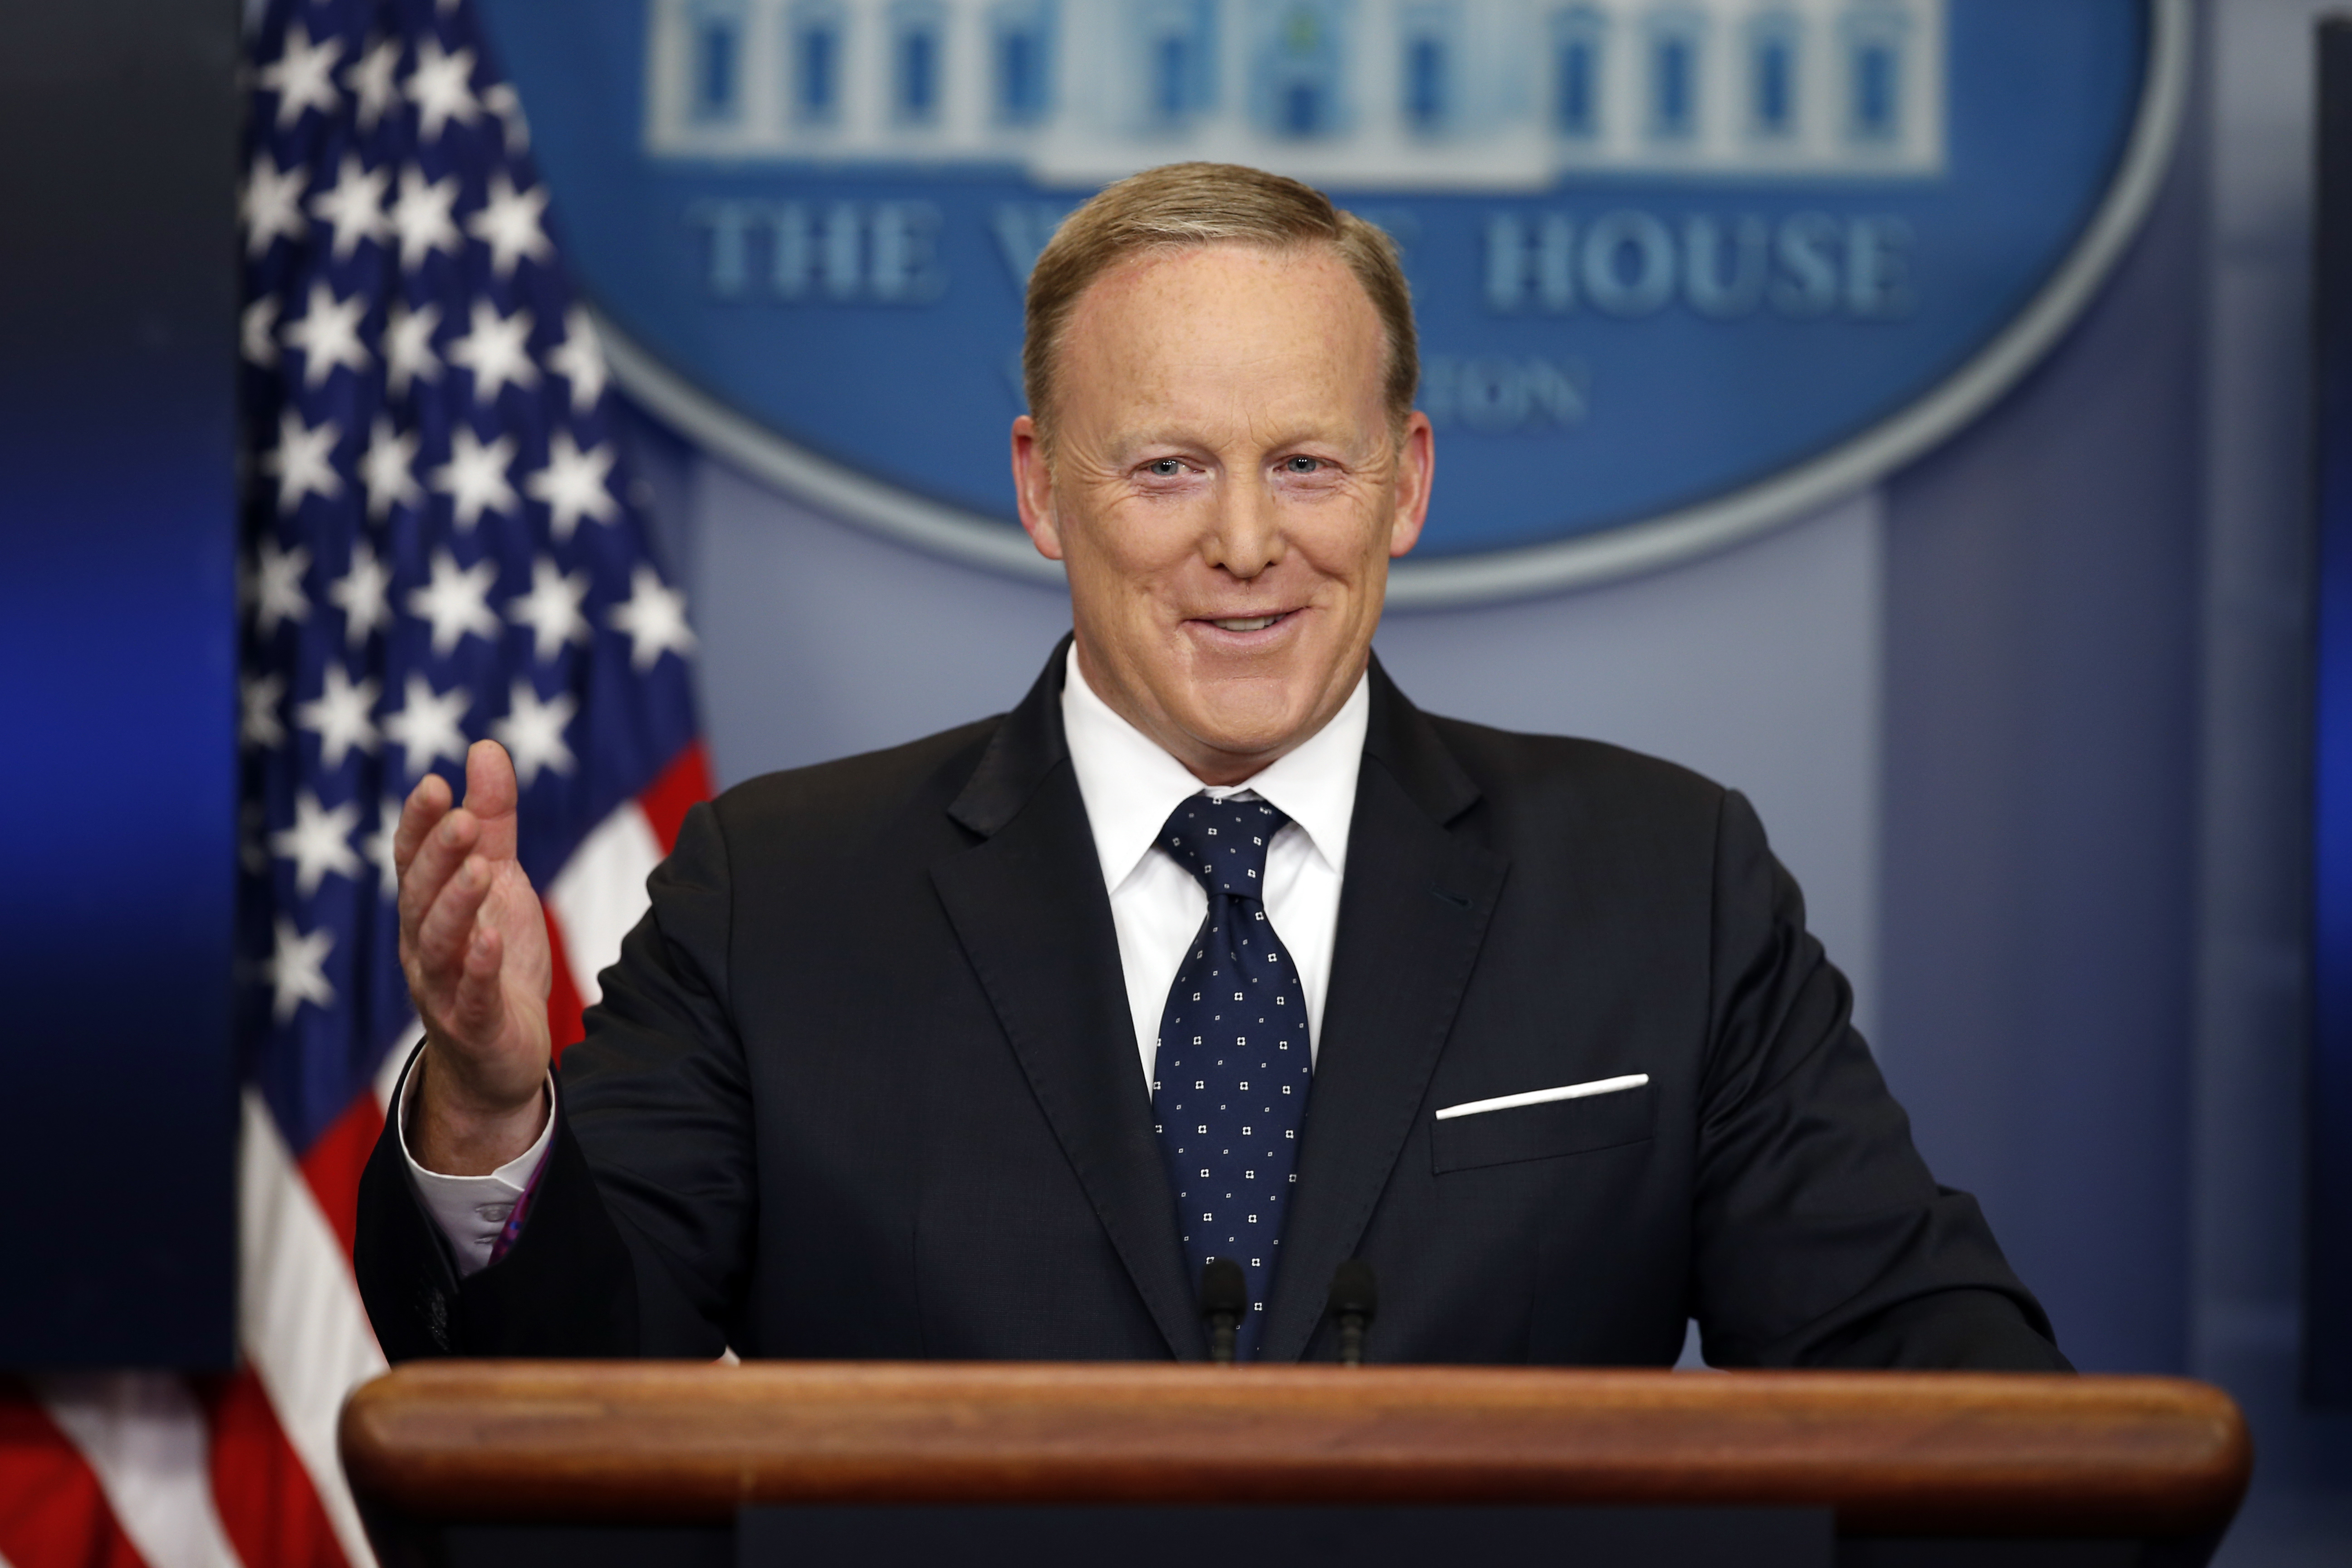 Spicer on returning as White House press secretary: 'Oh no. No, no, no.'